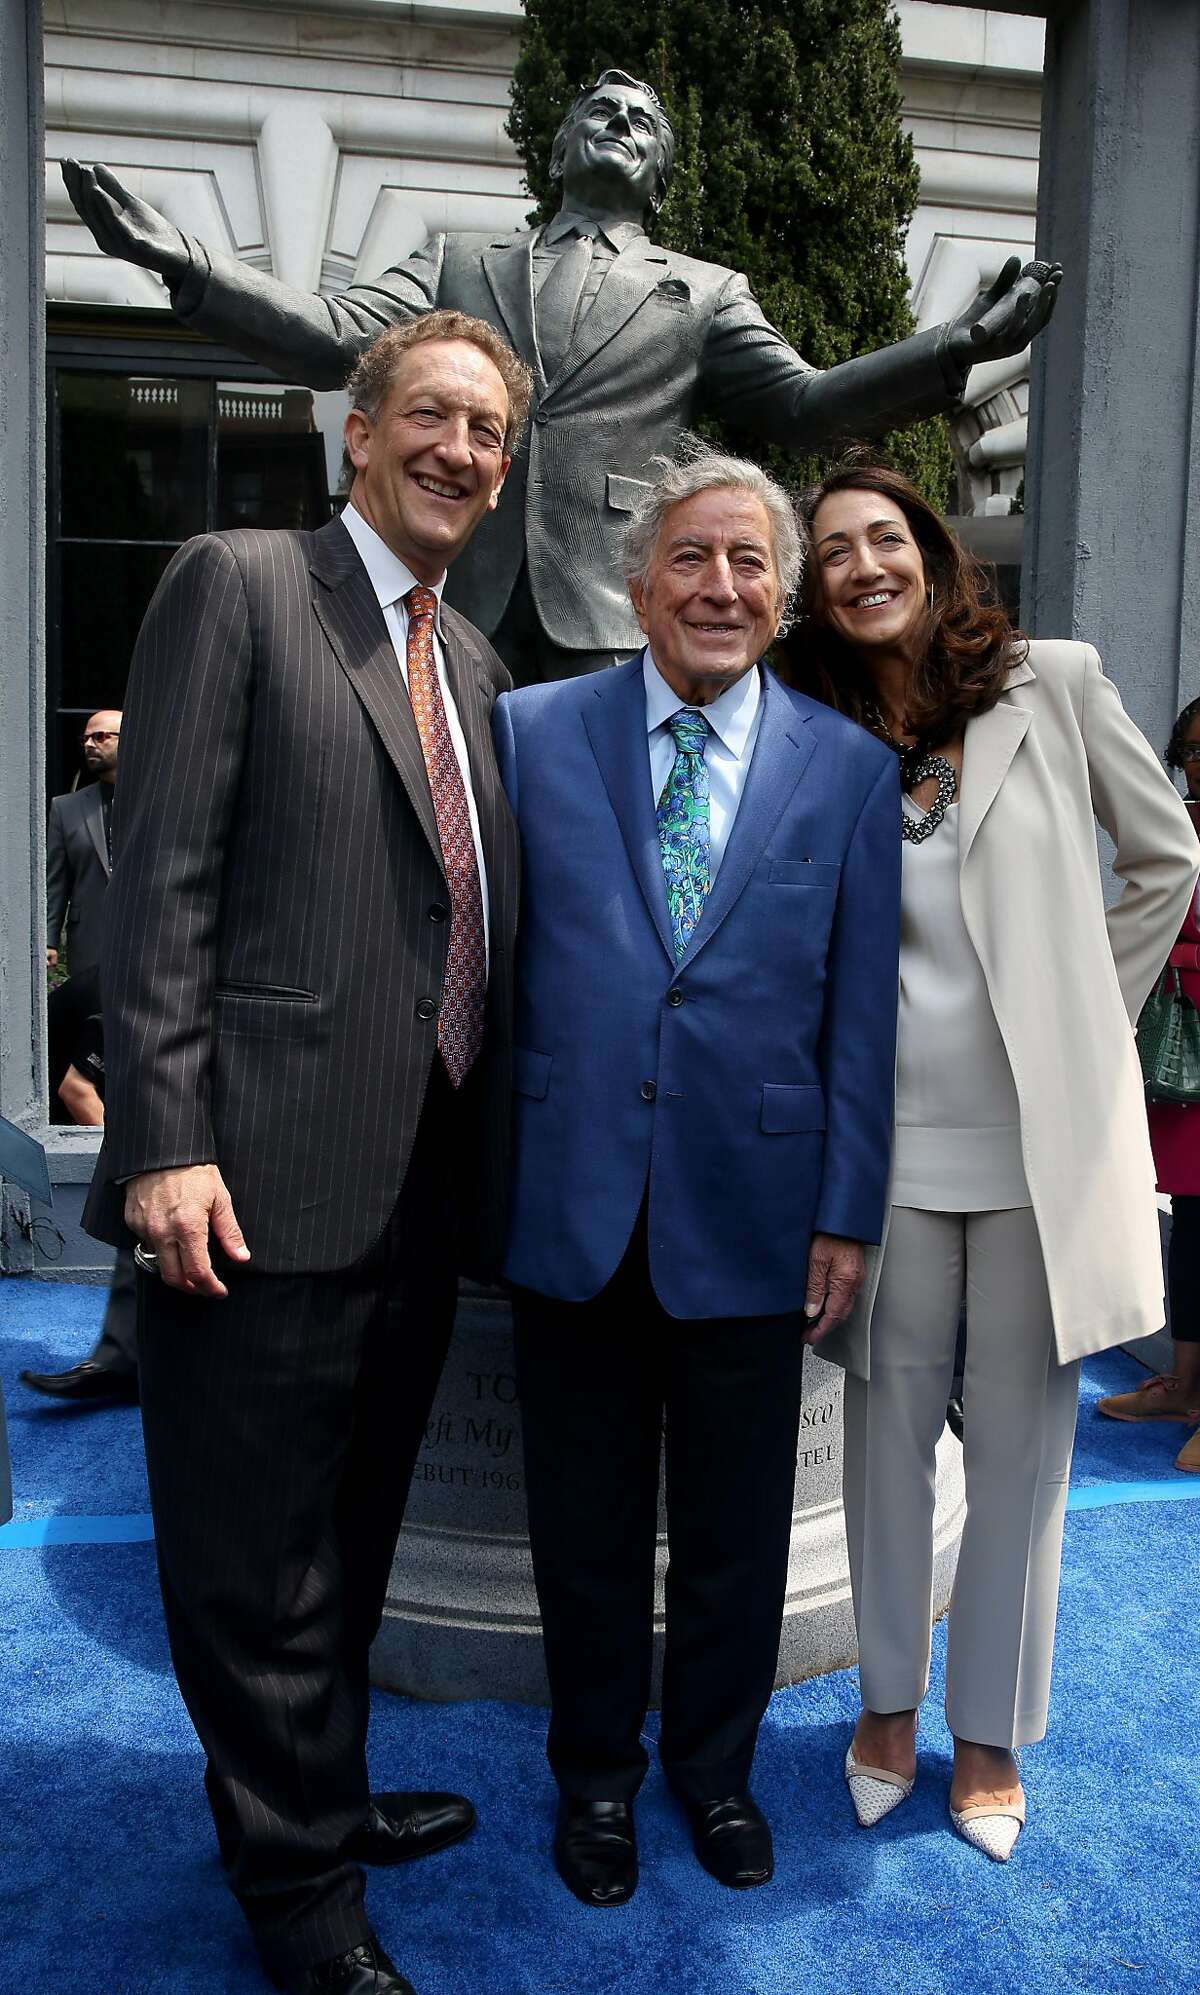 A bronze statue of Tony Bennett was unveiled on his birthday today as SF Giants' CEO Larry Baer (left) and his wife (night) join him in front of the Fairmount Hotel on Friday, August 19, 2016, in San Francisco, Calif.